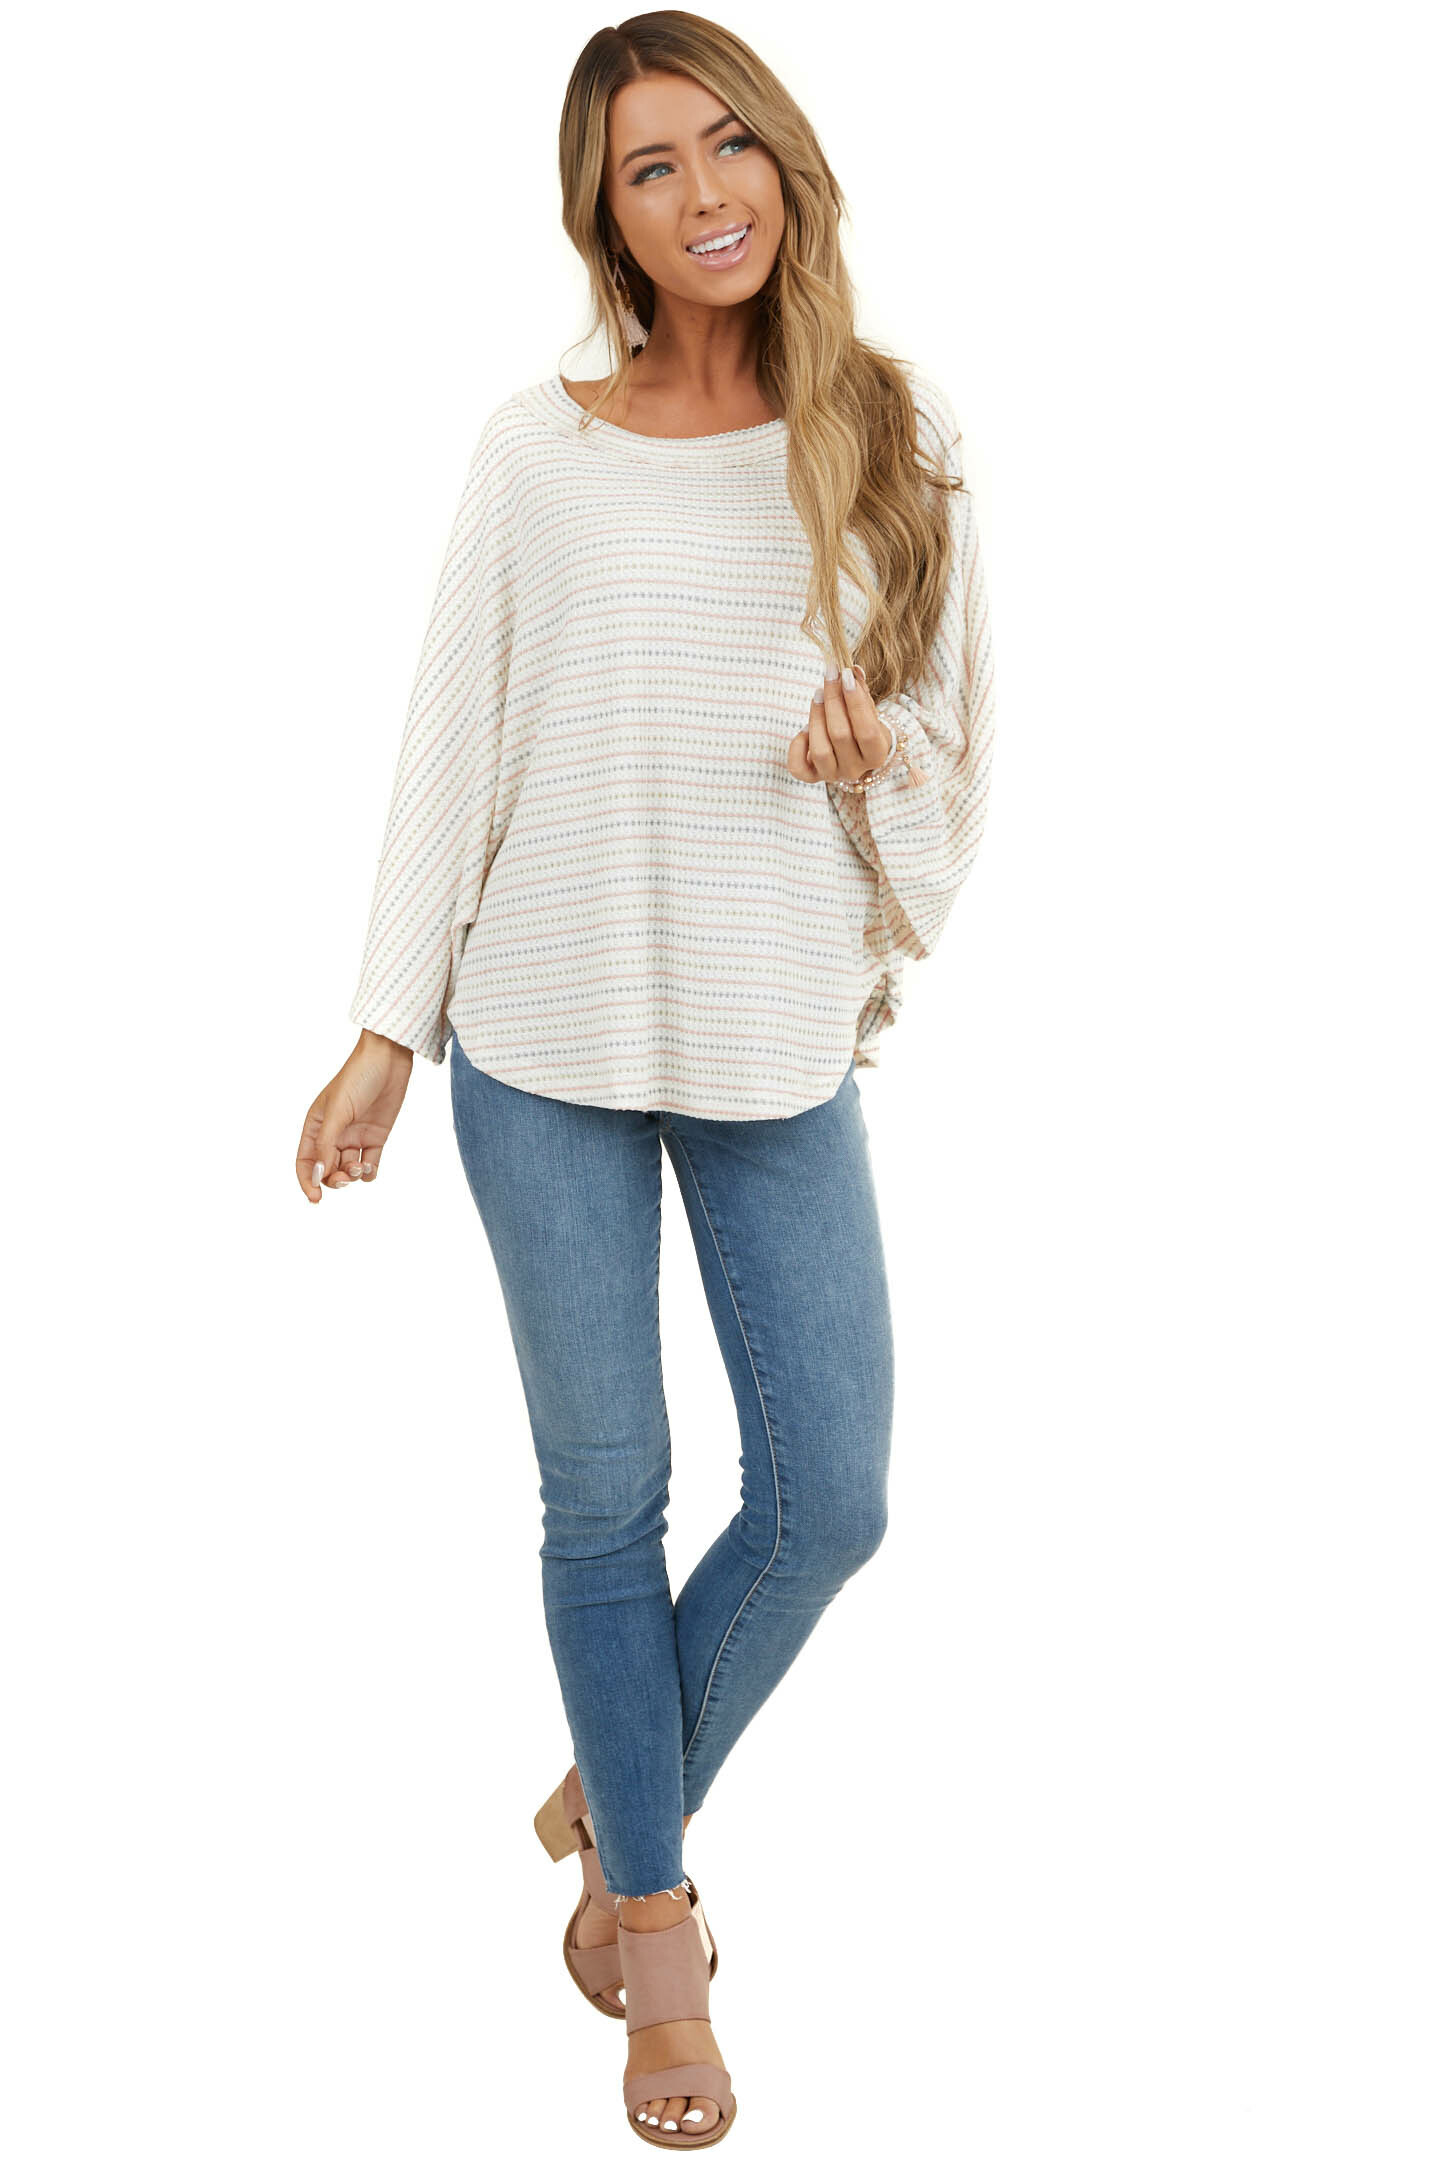 Ivory Multicolor Striped Waffle Knit Top with Loose Sleeves